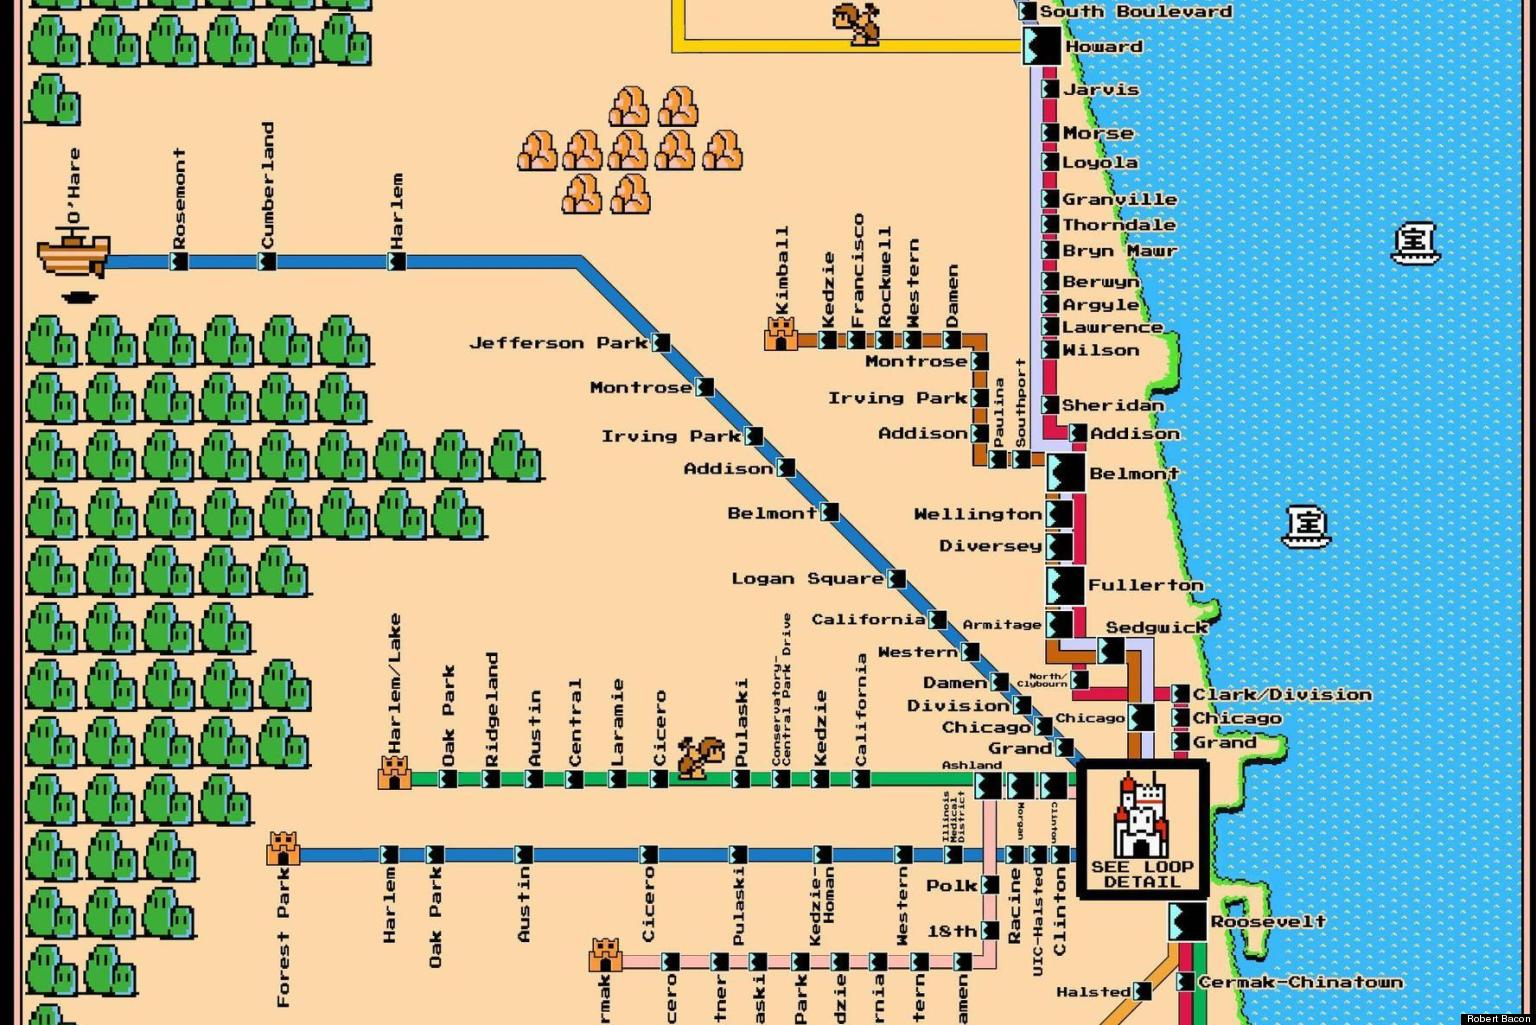 L Subway Map.Famous Subway Maps Reimagined As Vintage Super Mario Brothers Games